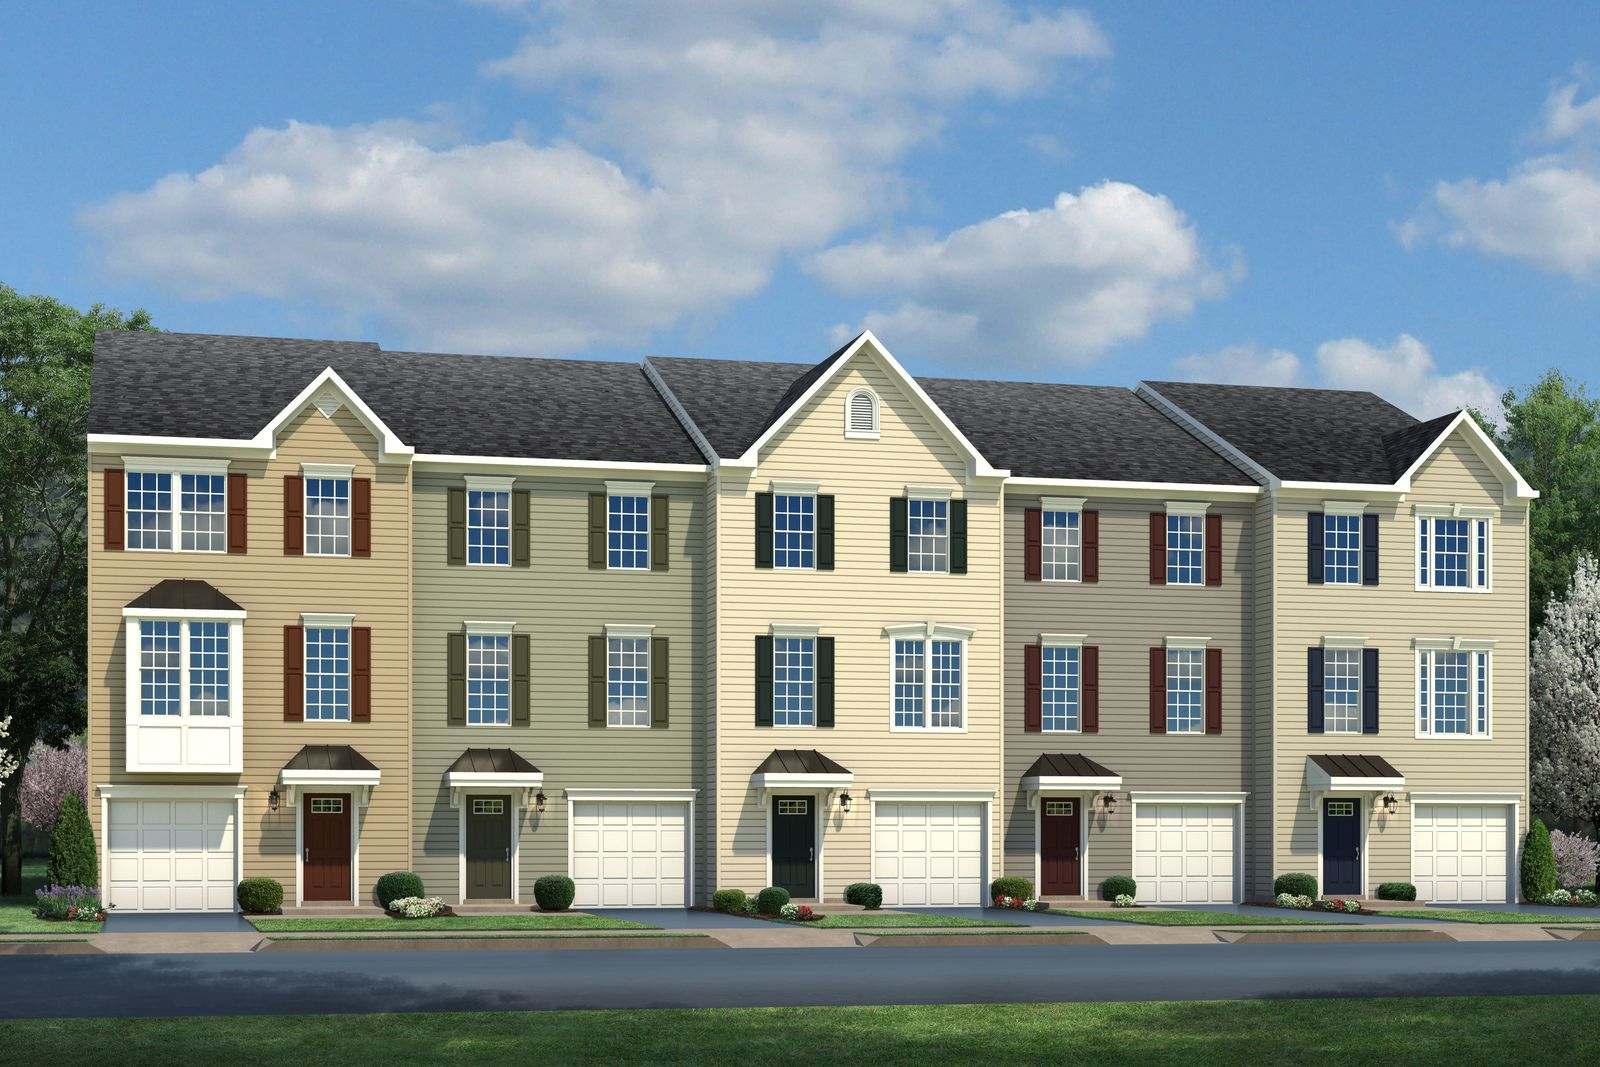 WELCOME TO WHITEWOOD VILLAGE:The lowest-priced new townhomes in Newark with spacious bedrooms, flexible spaces and garages, convenient to UD, Chase and Christiana Mall.Click here to schedule your appointment!